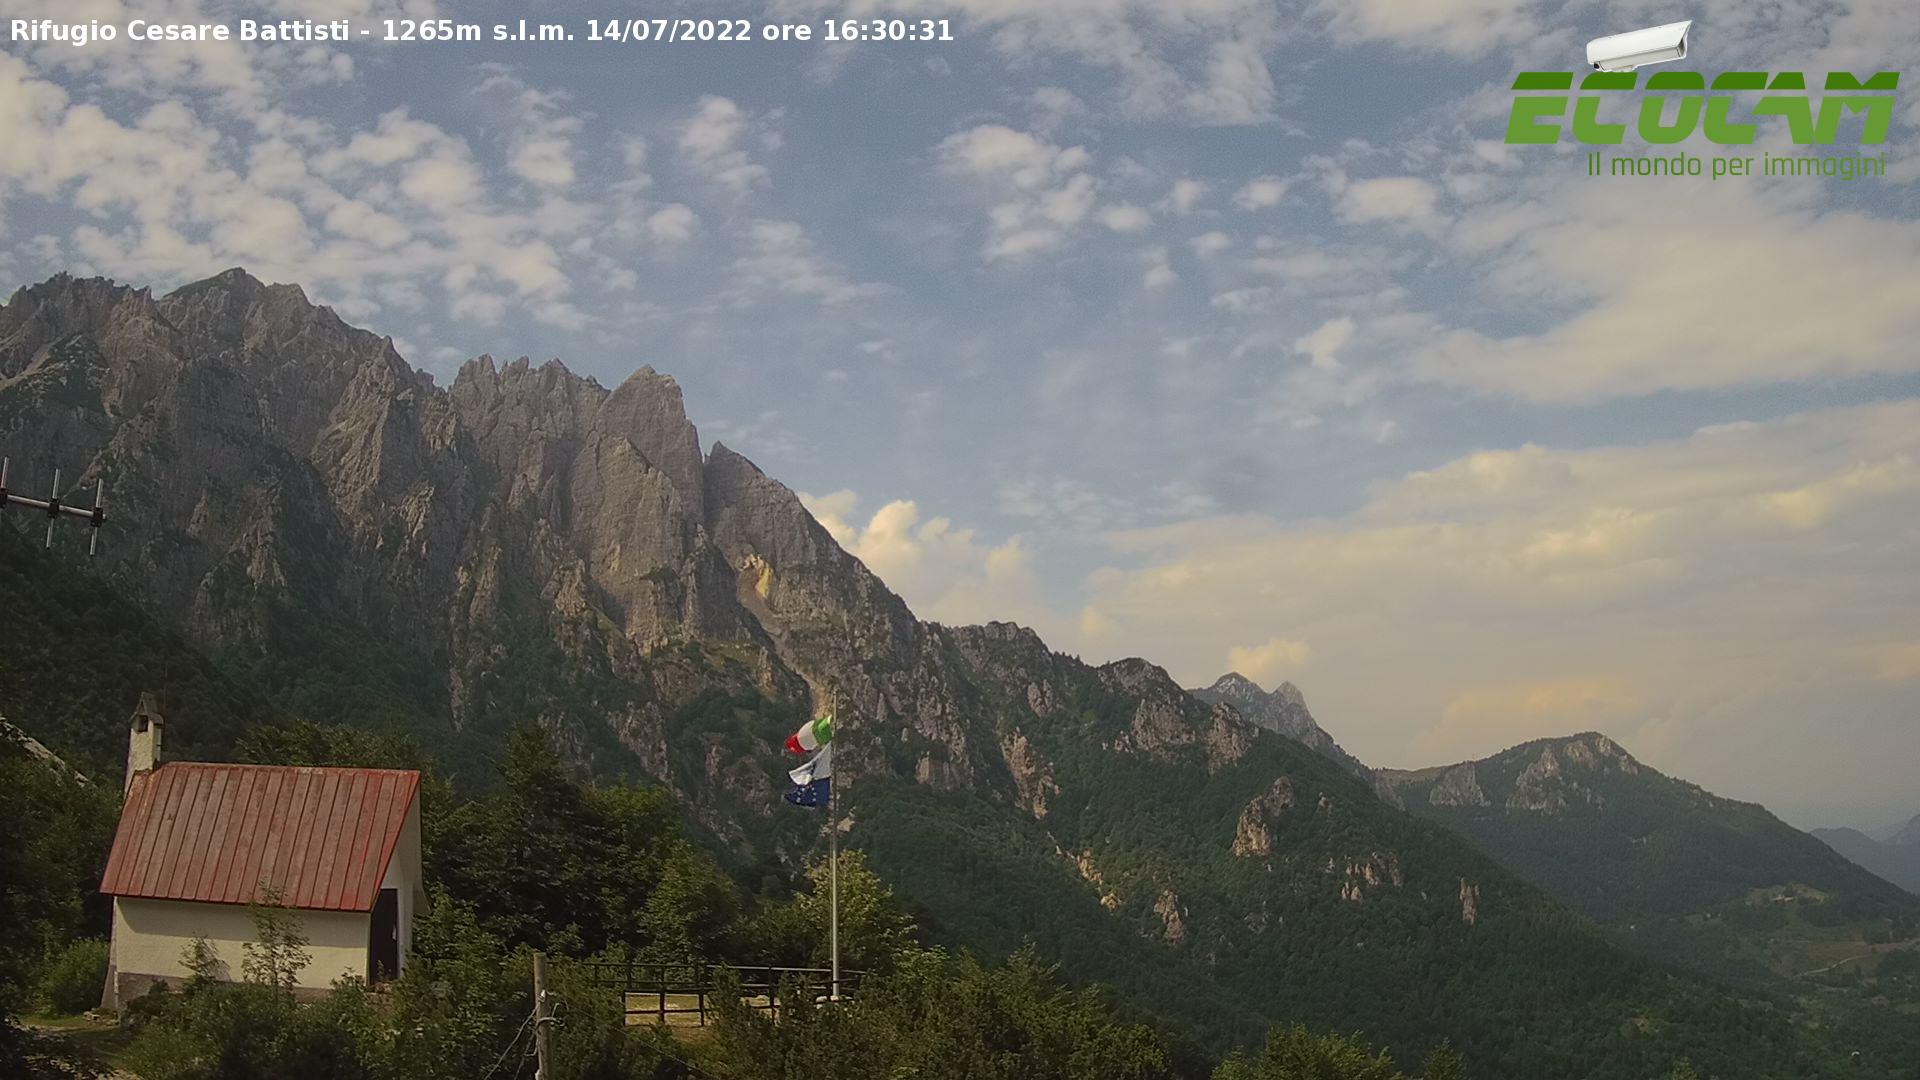 Webcam Rifugio Cesare Battisti alla Gzza